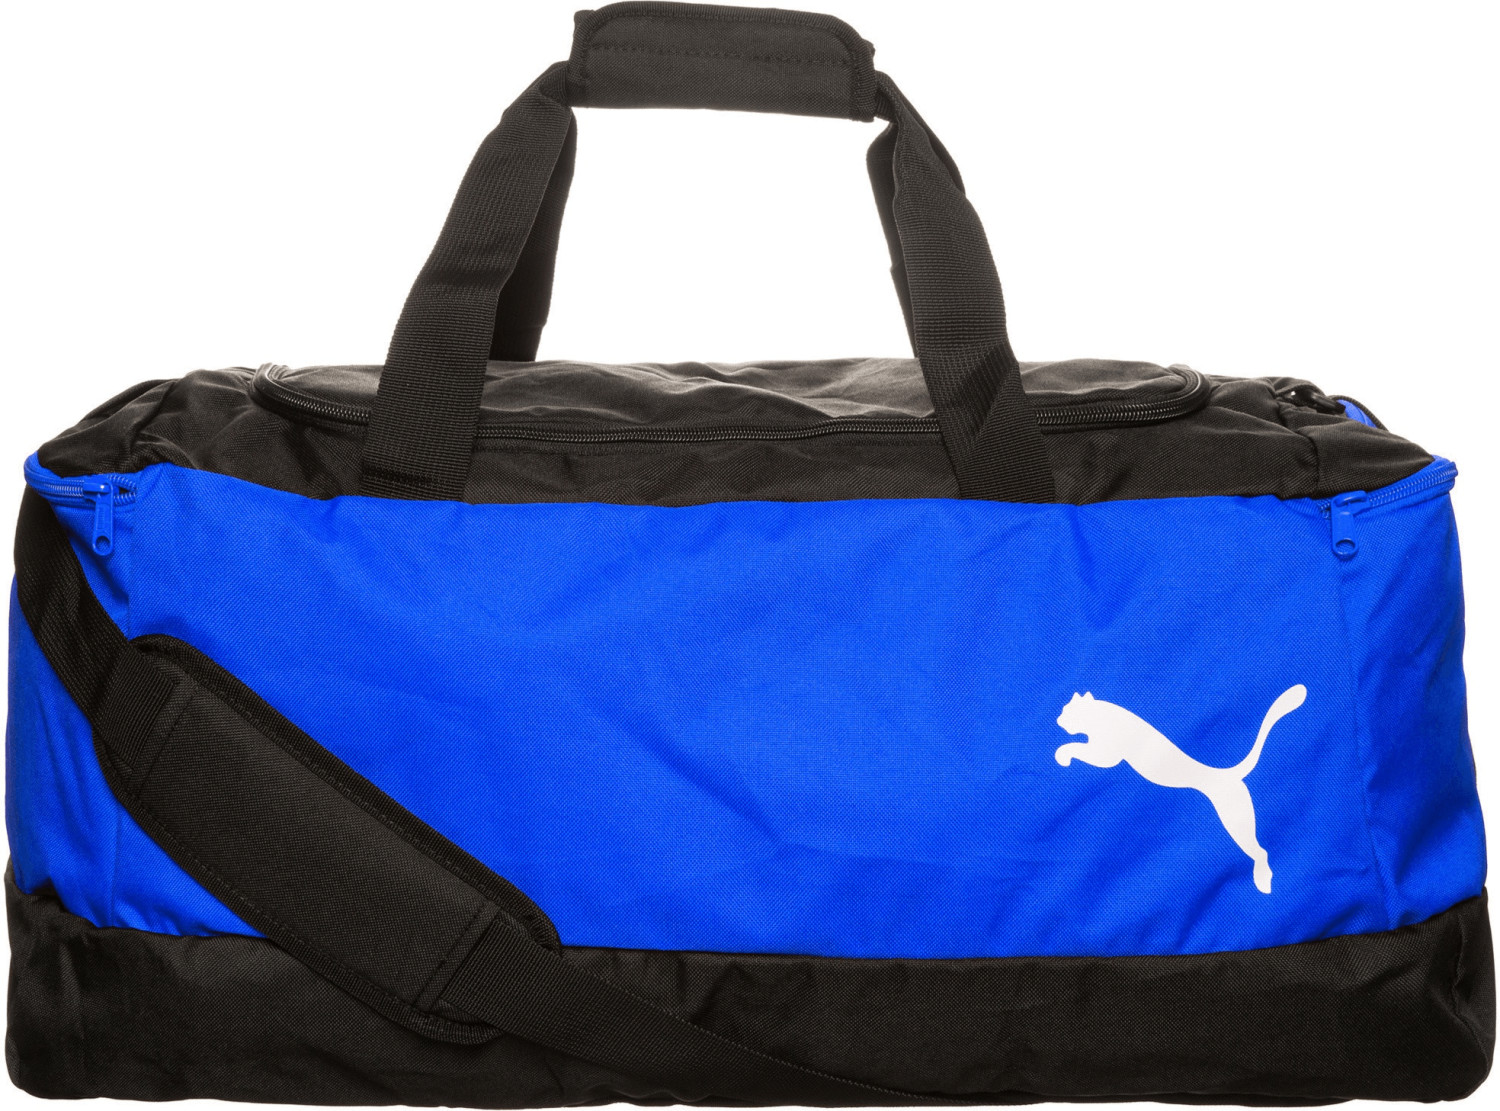 Puma Pro Training II Medium Bag puma royal/puma black (74892)